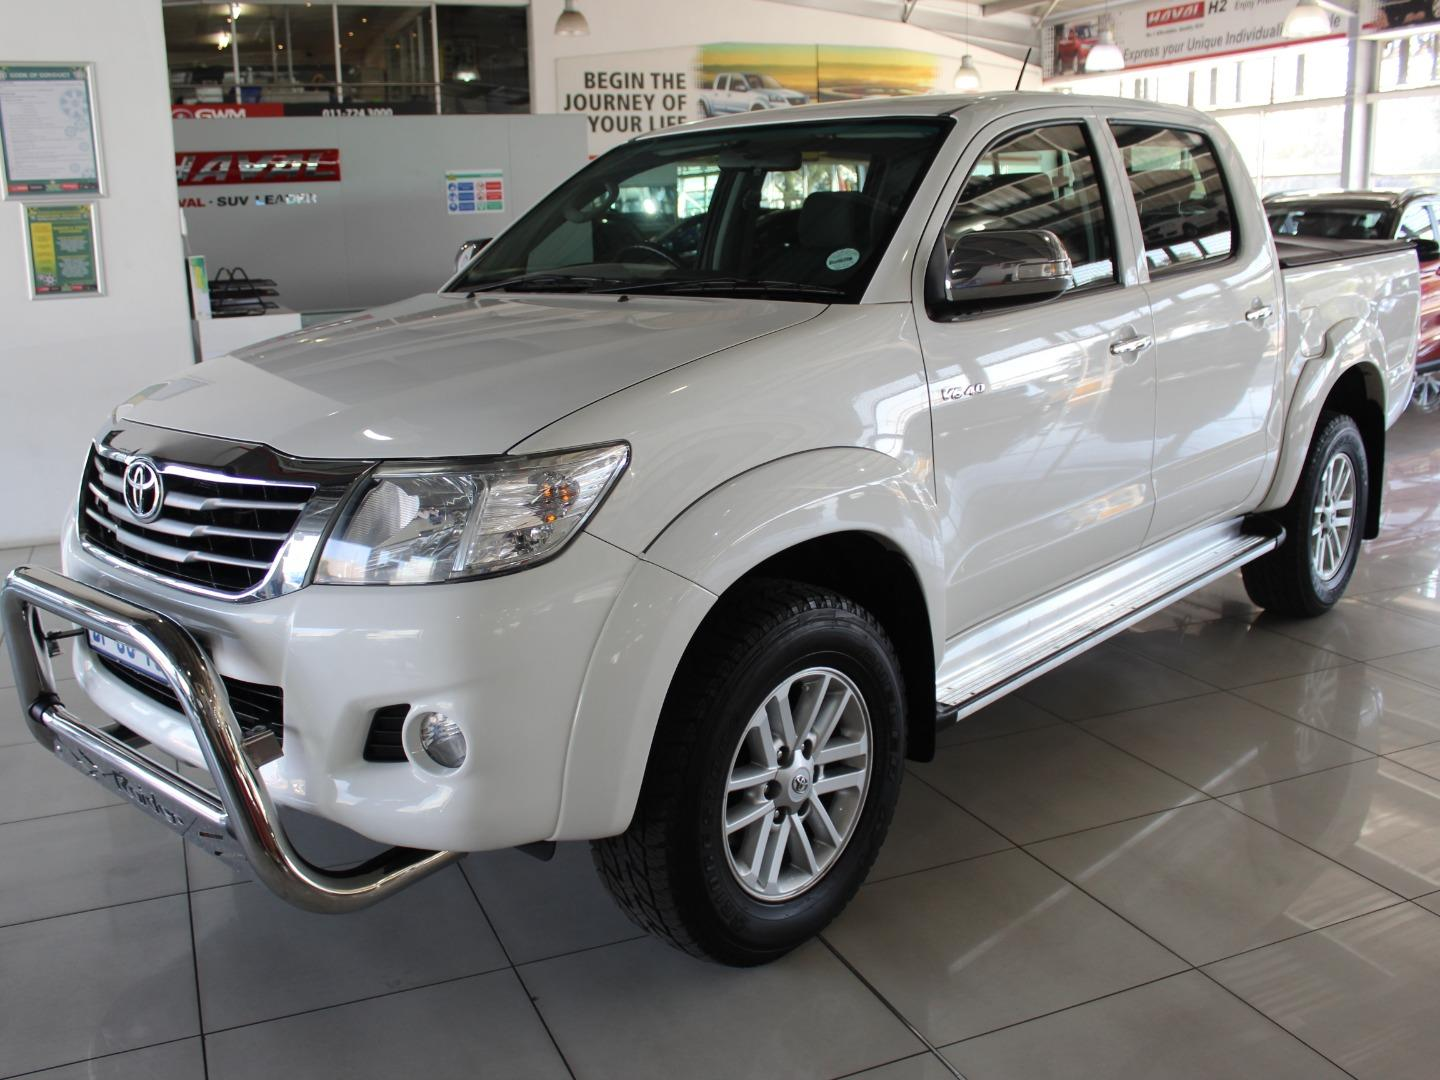 2014 Toyota Hilux 4.0 V6 Double Cab Raider- Picture 7